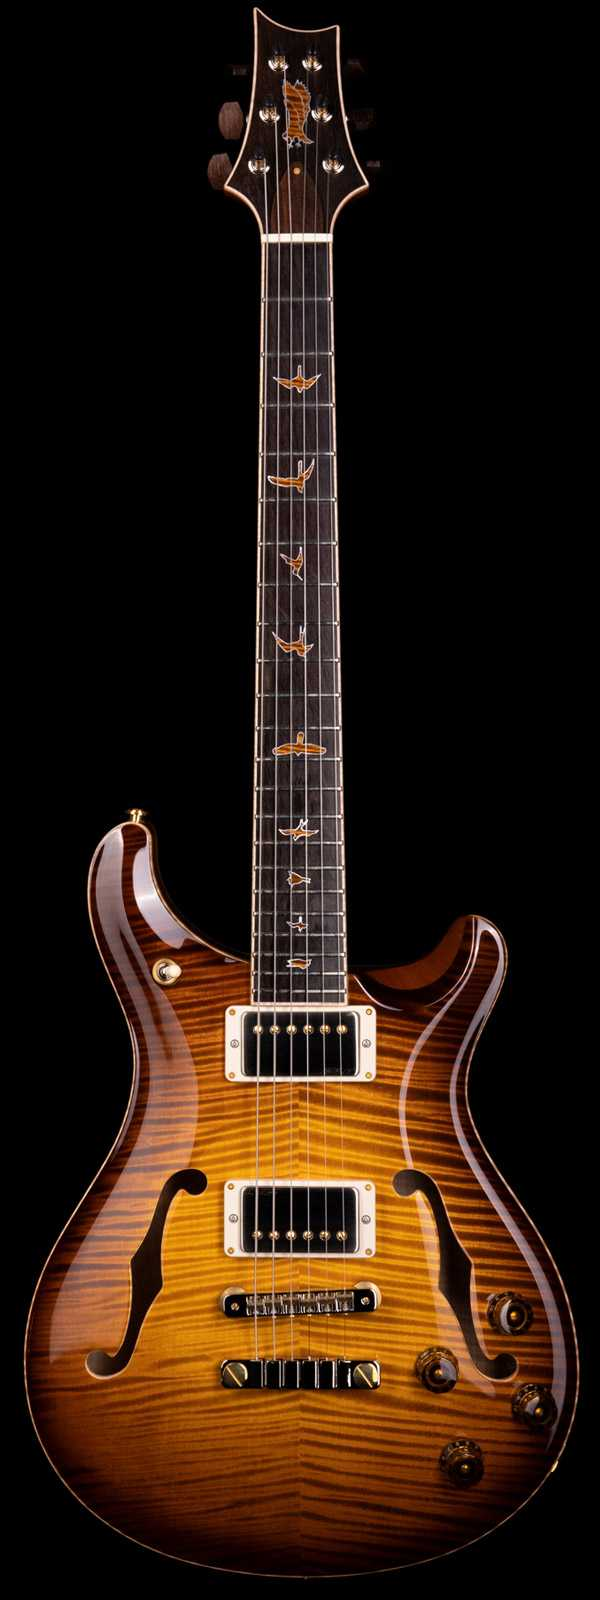 PRS Private Stock 8659 McCarty 594 Hollowbody II McCarty Glow Smoked Burst